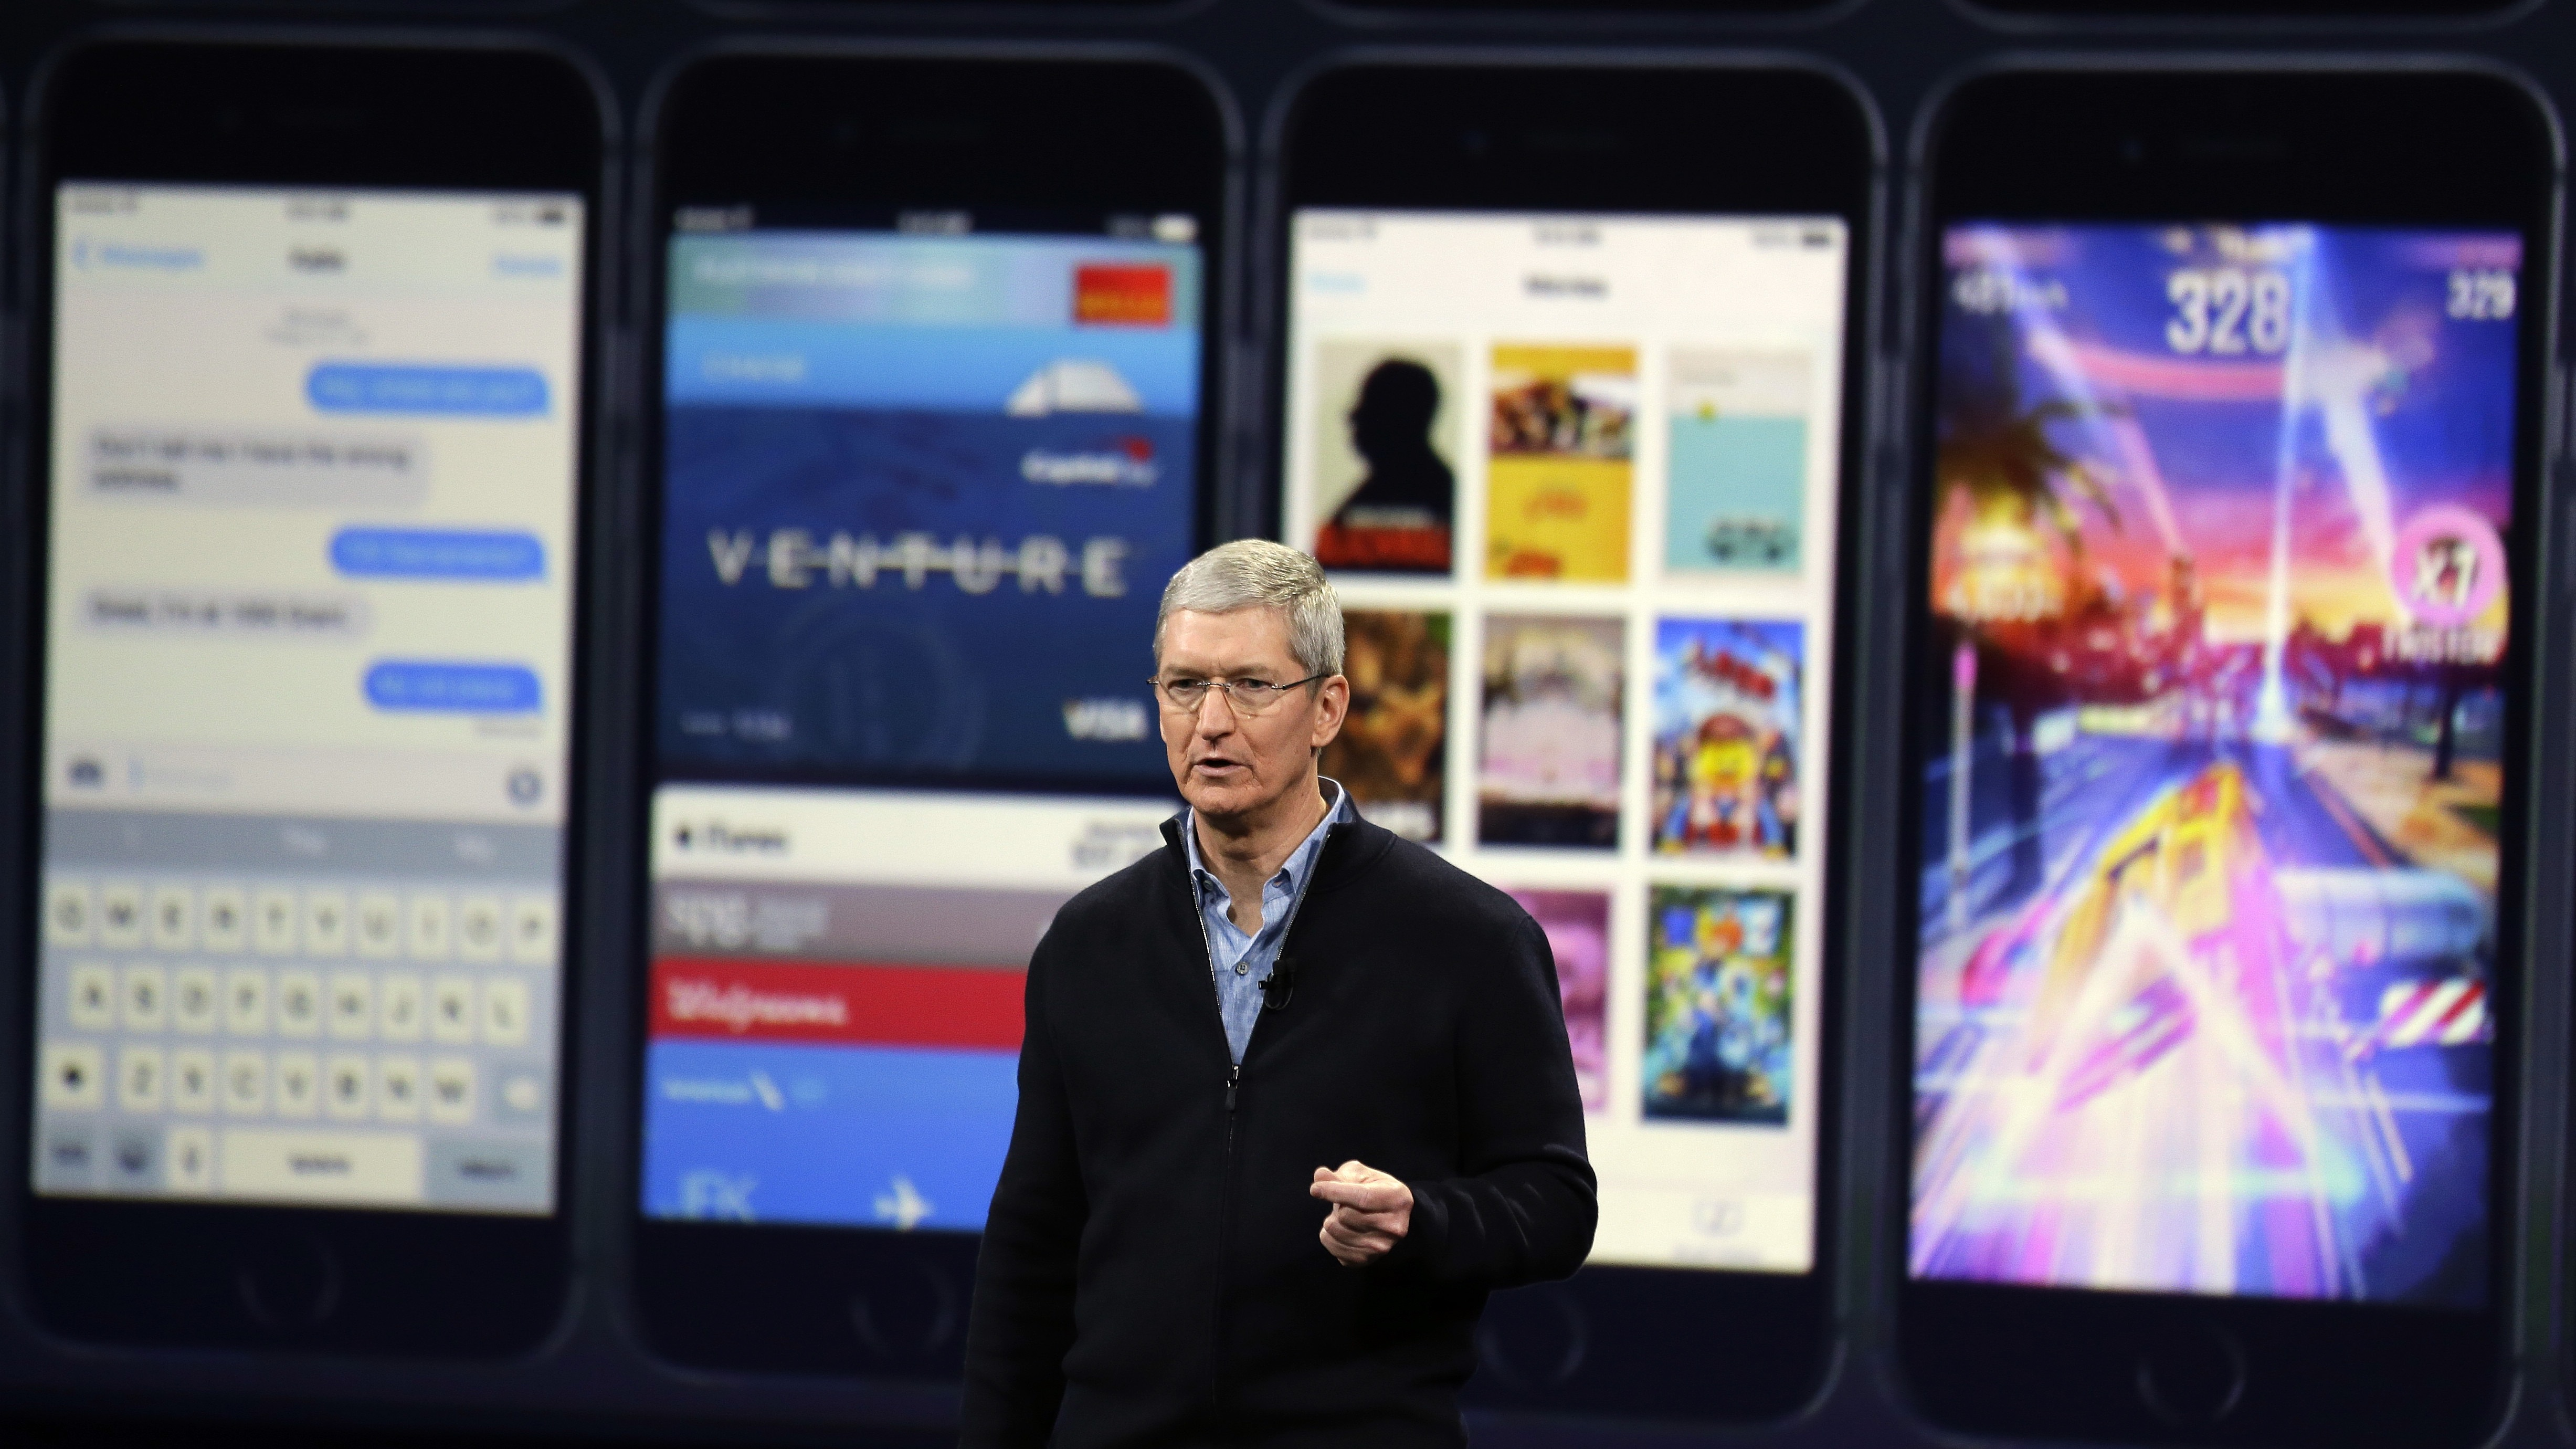 Apple CEO Tim Cook speaks during an Apple event on Monday, March 9, 2015, in San Francisco. (AP Photo/Eric Risberg)